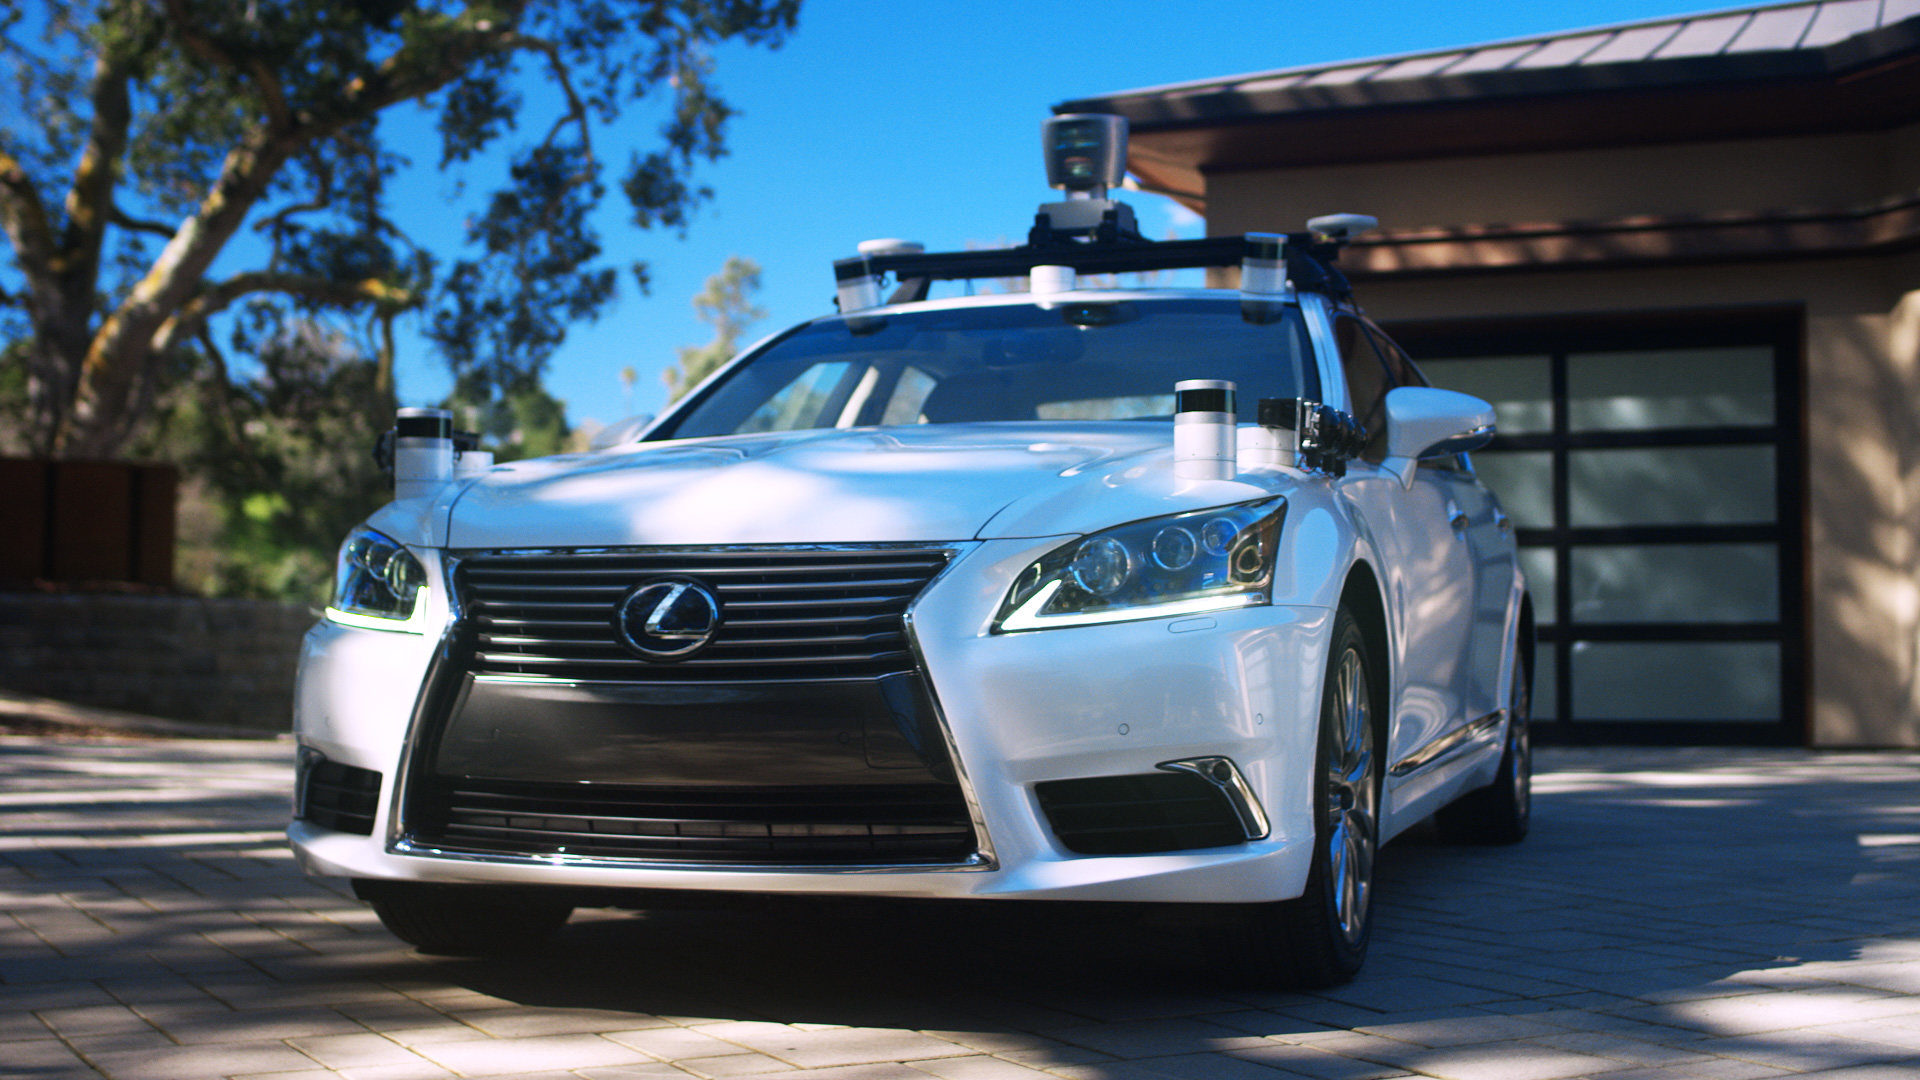 toyota safety car 3584?w=970 connected cars could drive the need for 5g technologies telecomtv  at readyjetset.co